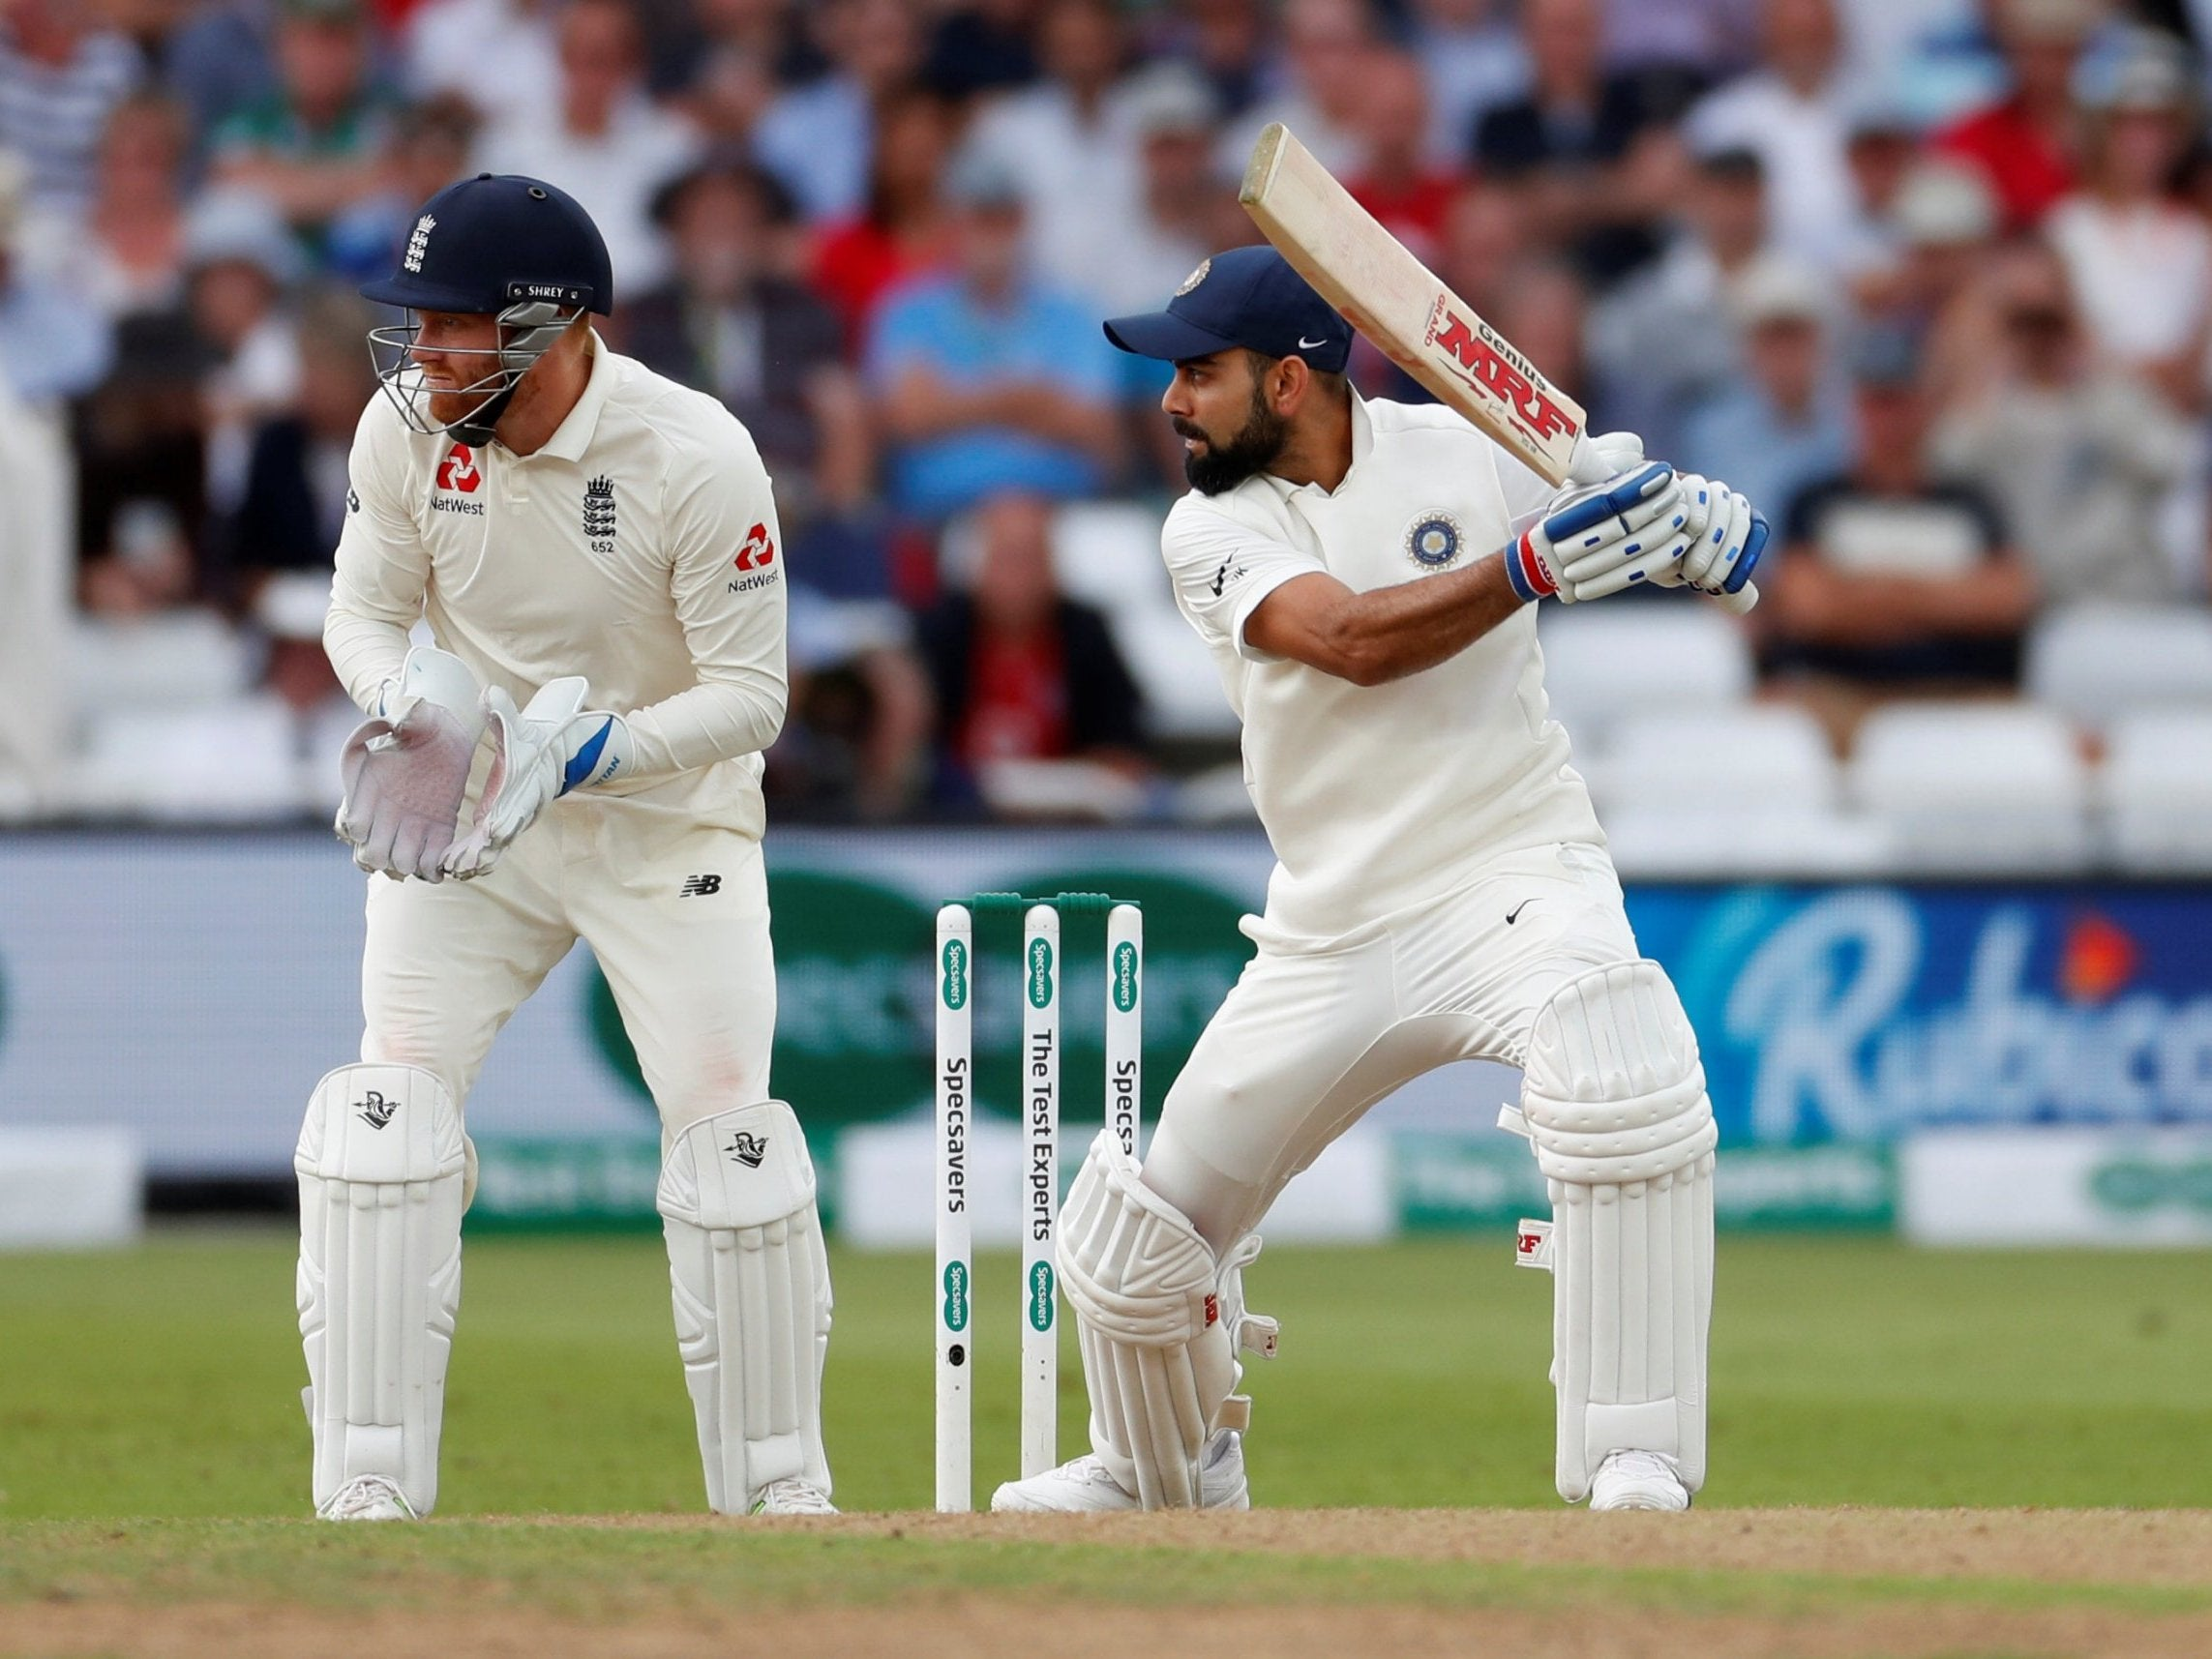 India Frustrate England Into Playing Their Game Virat Kohli Picks His Targets Why Debutant Rishabh Pant Holds The Key The Independent The Independent